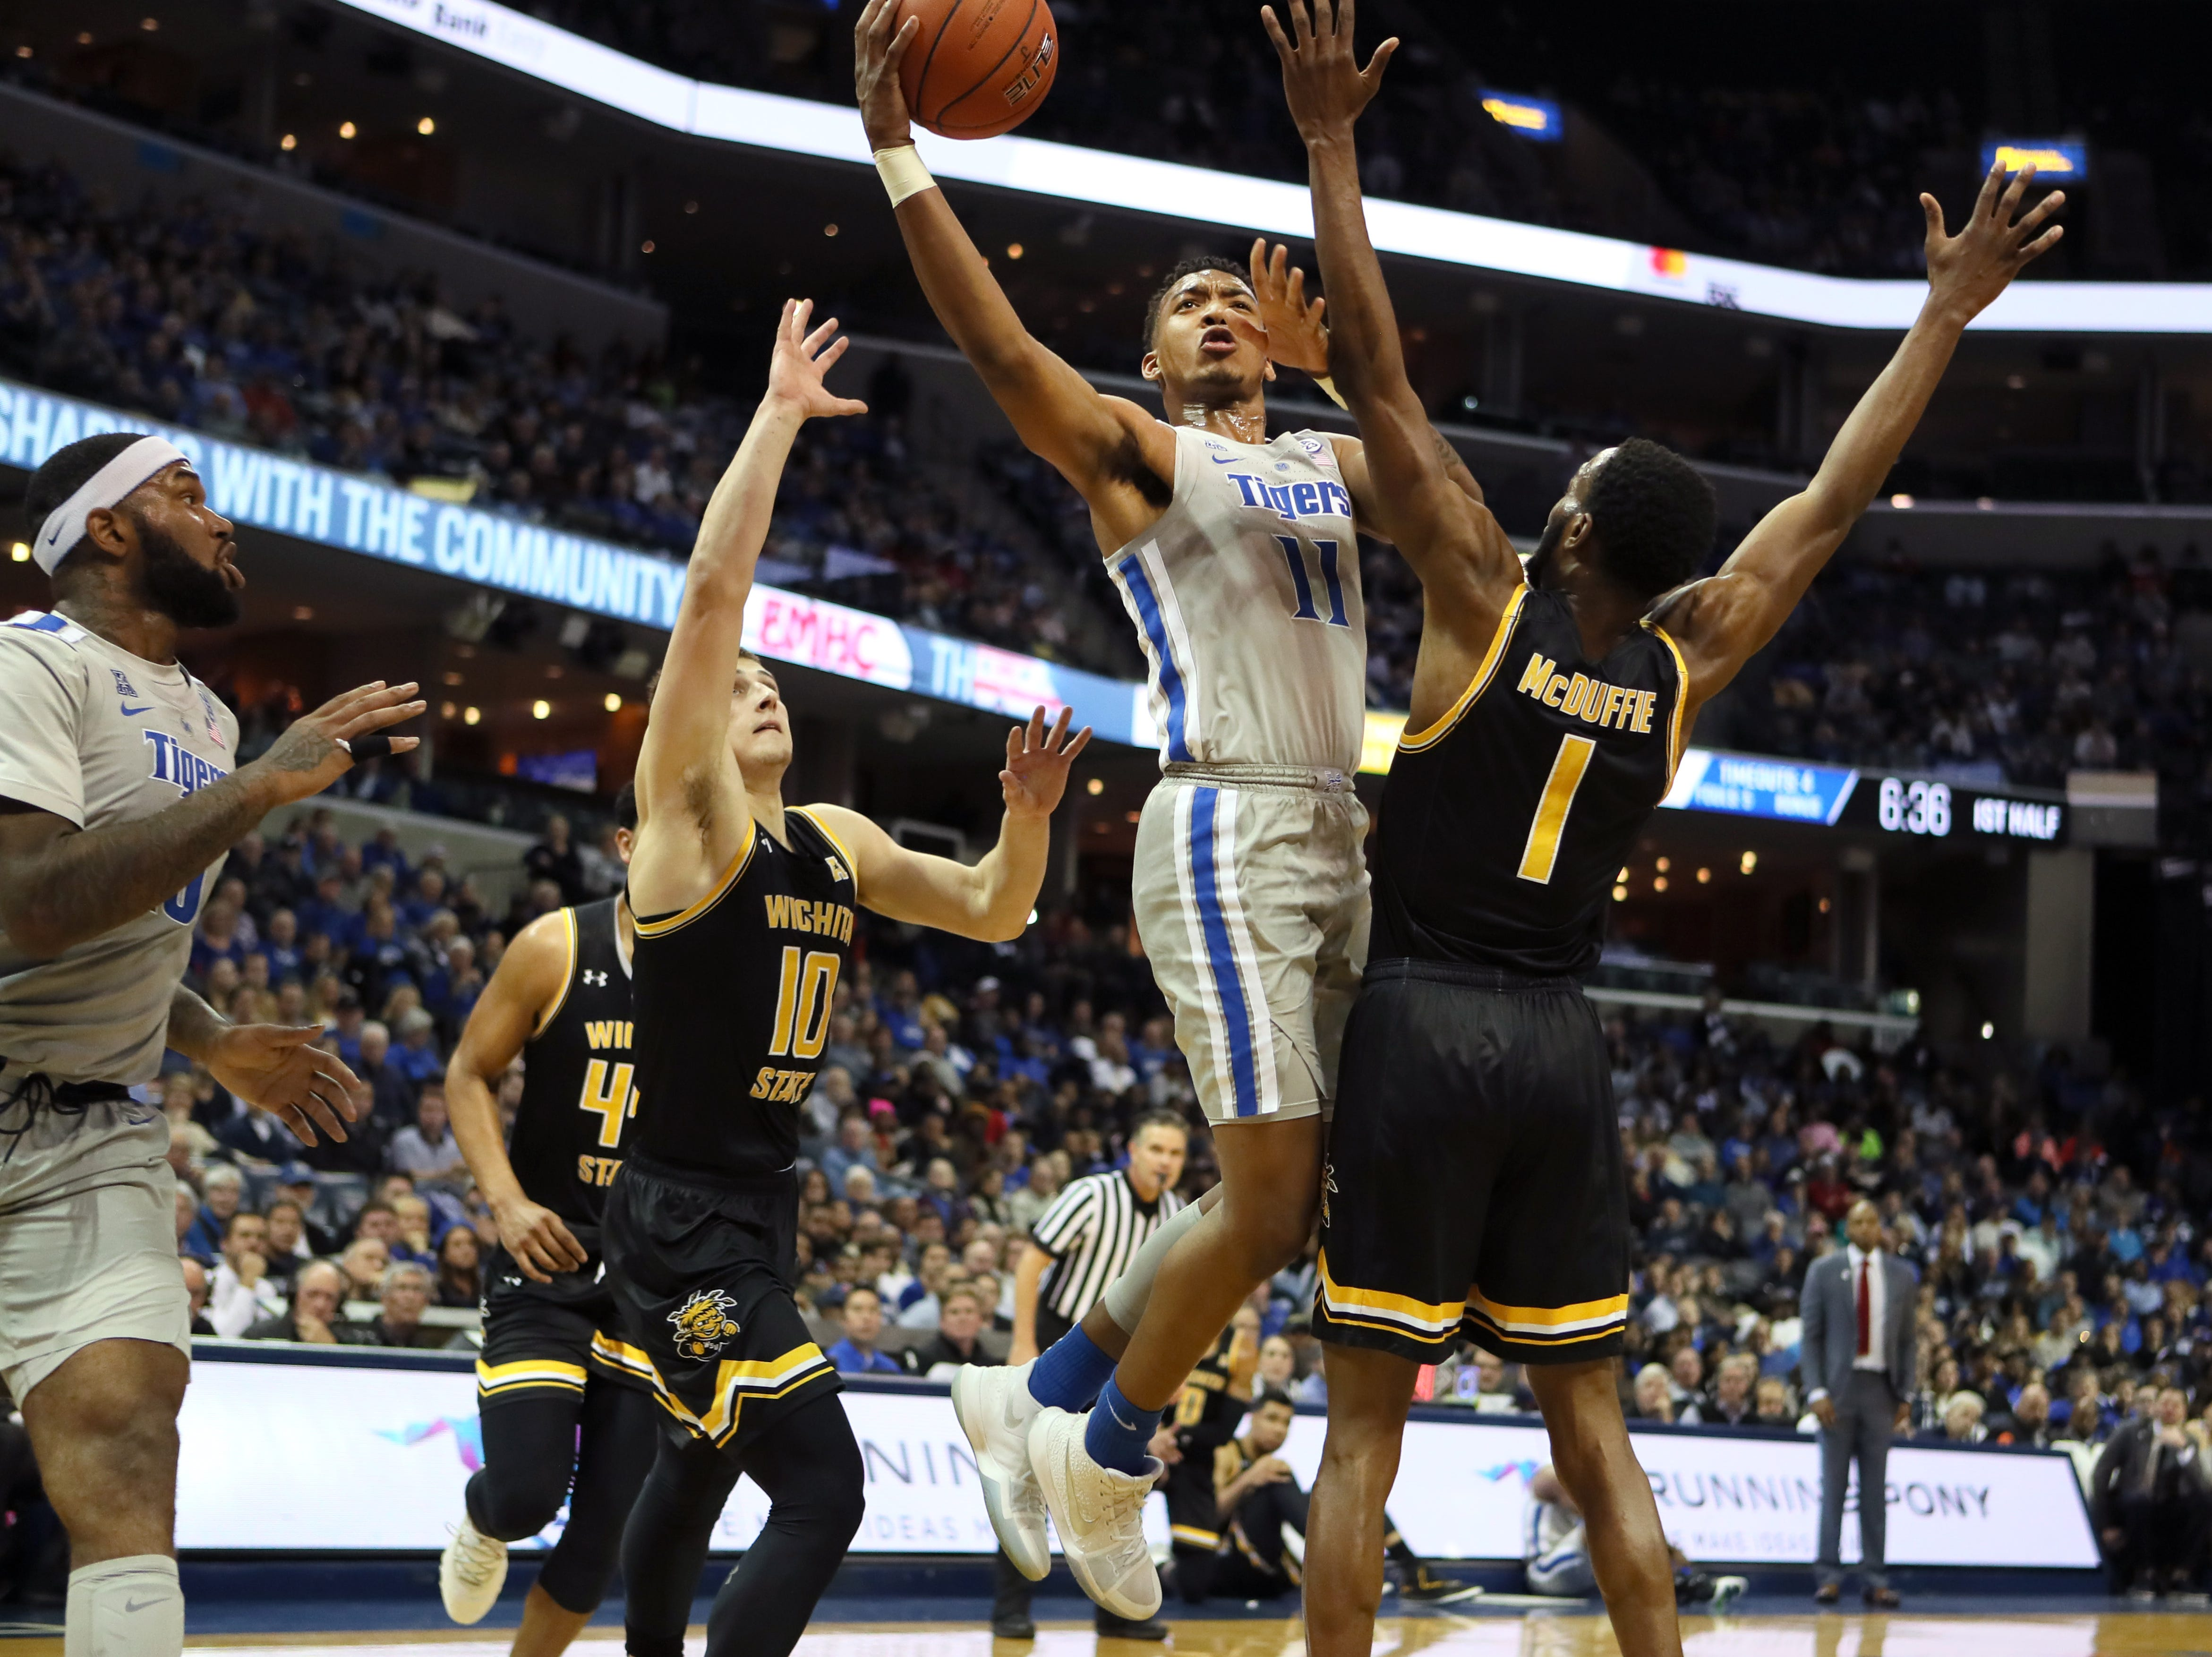 Memphis Tigers guard Antwann Jones shoots the ball over Wichita State Shockers guard Erik Stevenson, left, and Markis McDuffie during their game at the FedExForum on Thursday, Jan. 3, 2019.